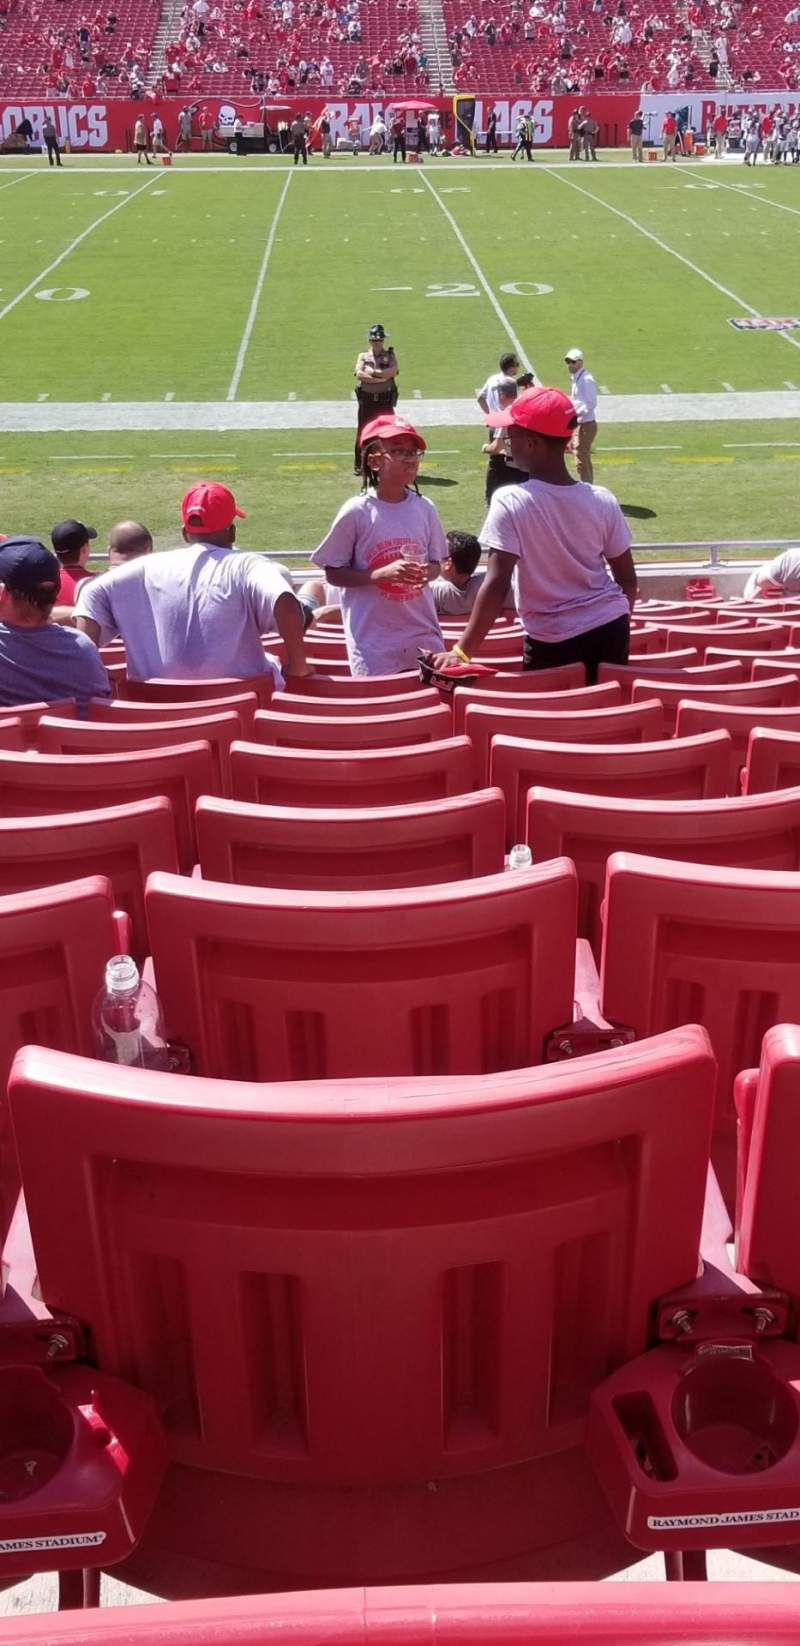 Seating view for Raymond James Stadium Section 133 Row S Seat 17